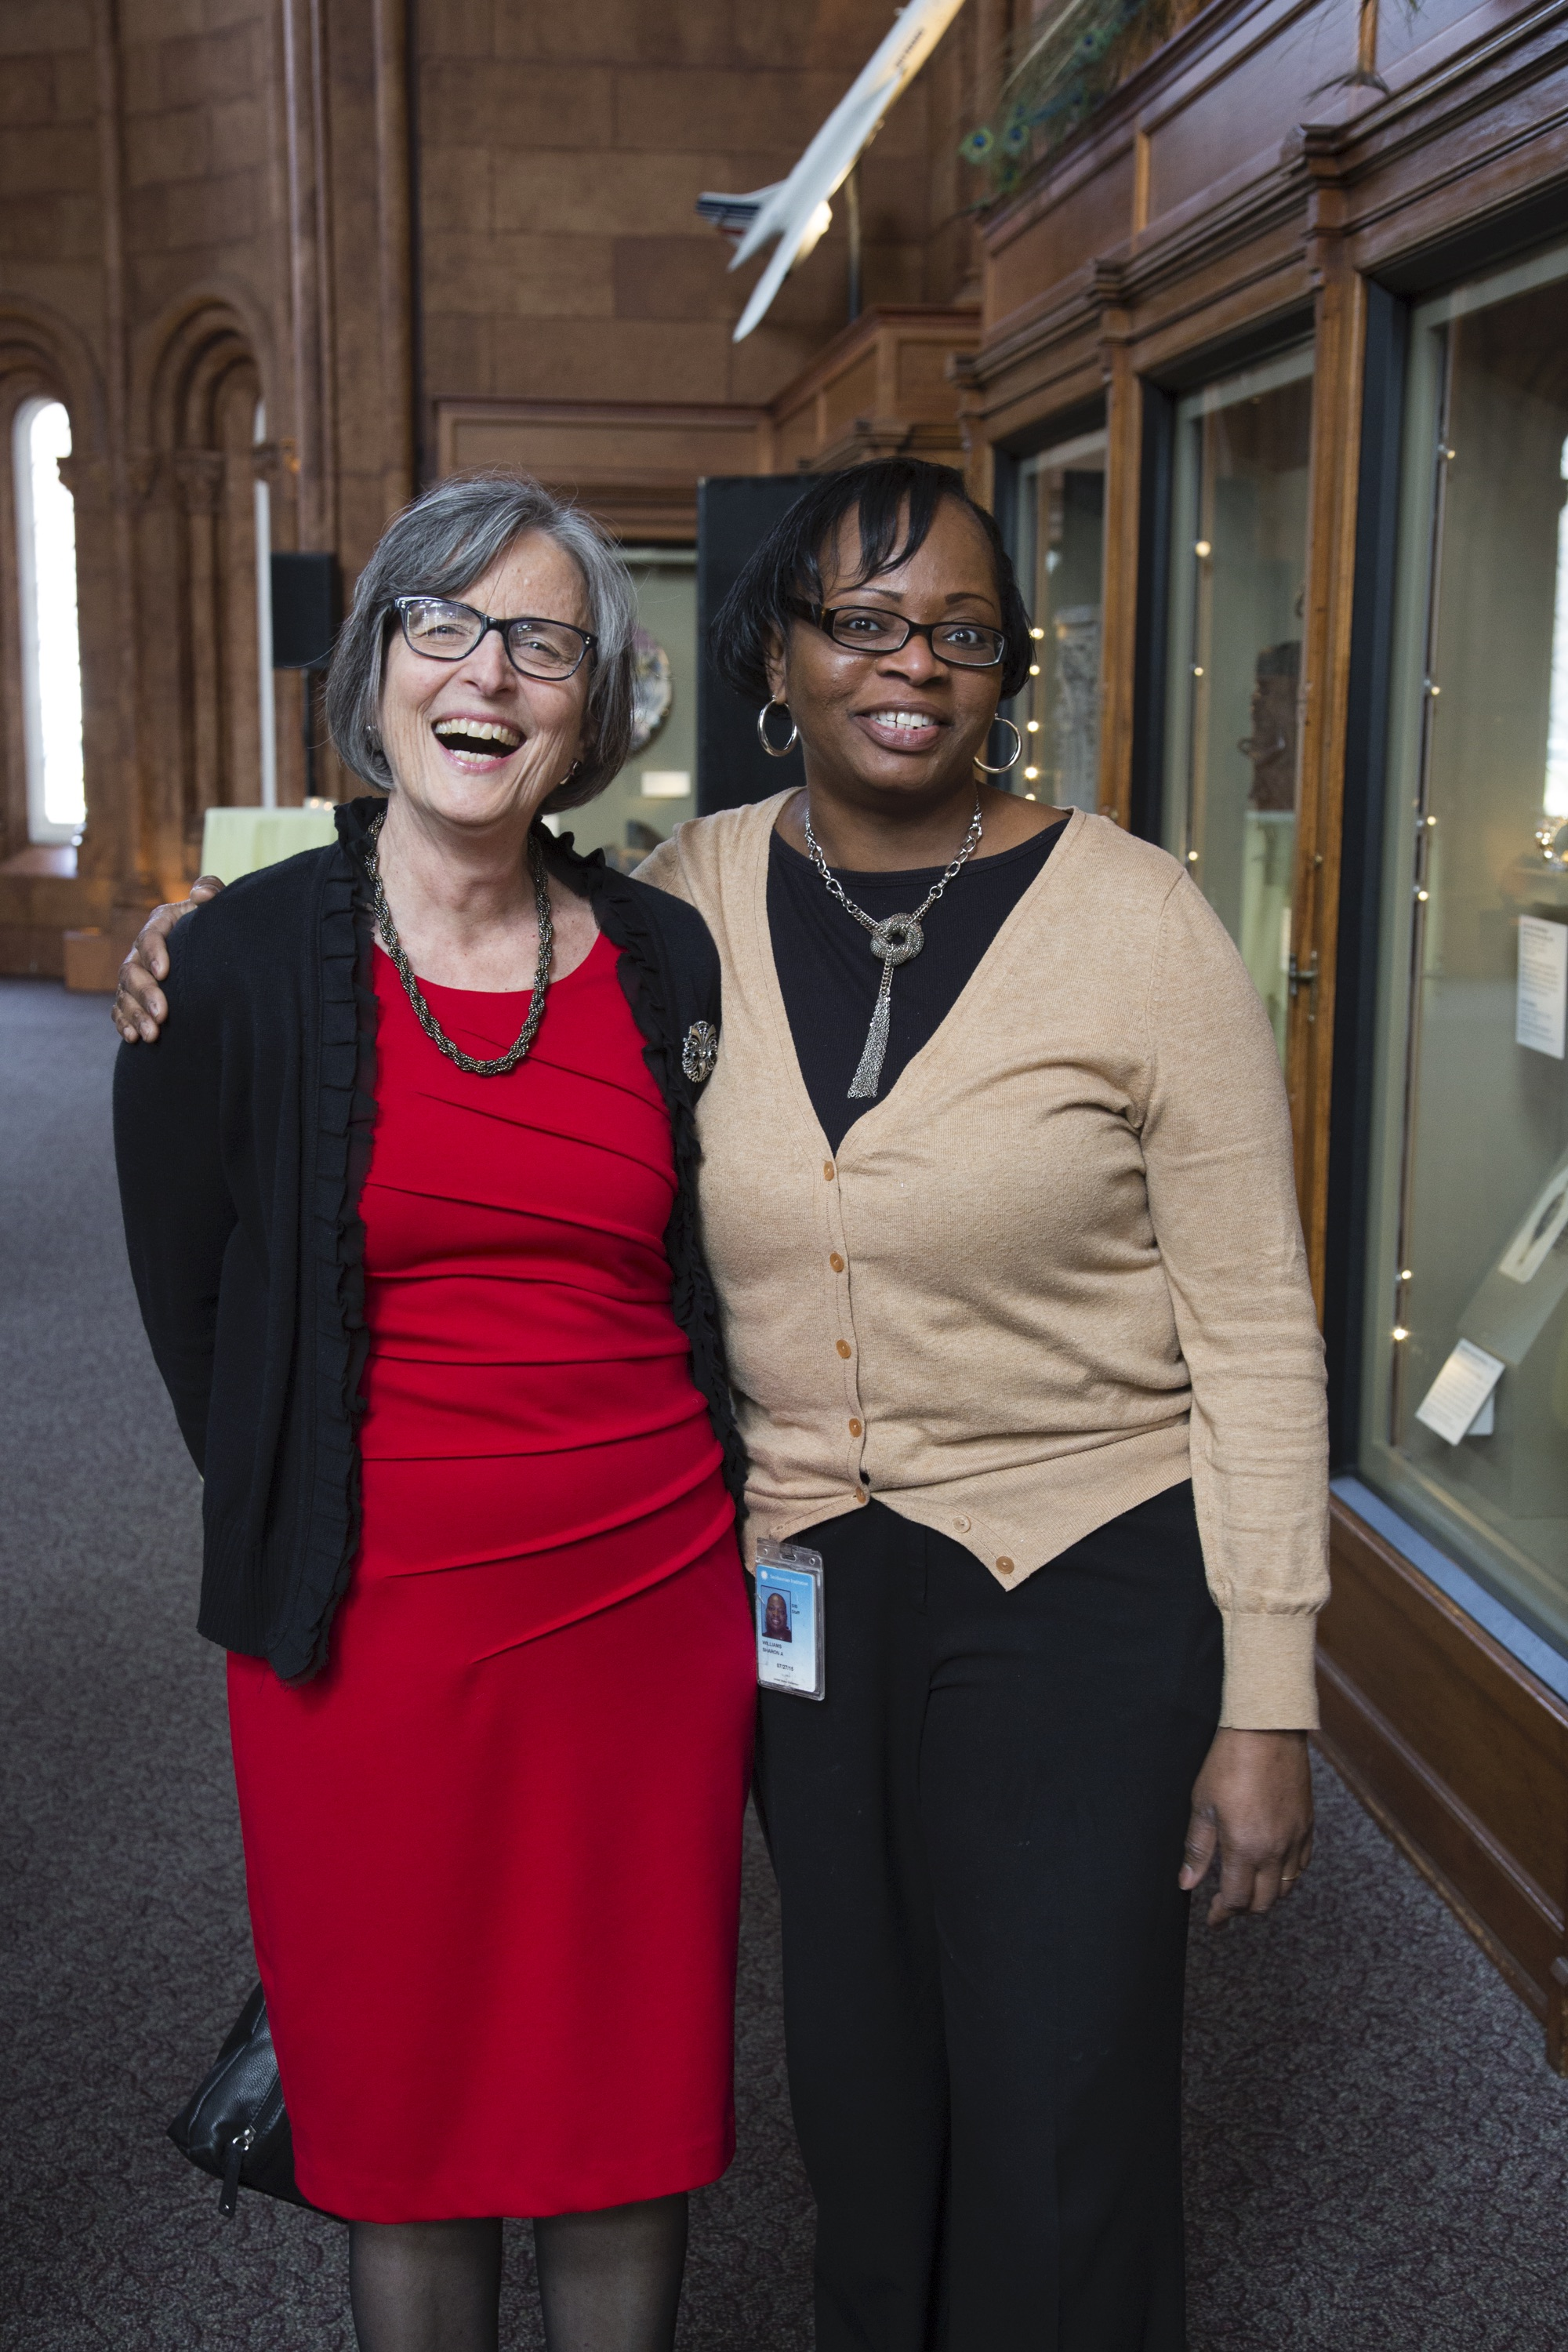 Smithsonian Undersecretary for Science Eva J. Pell with her assistant Sharon A. Williams at Pell's r